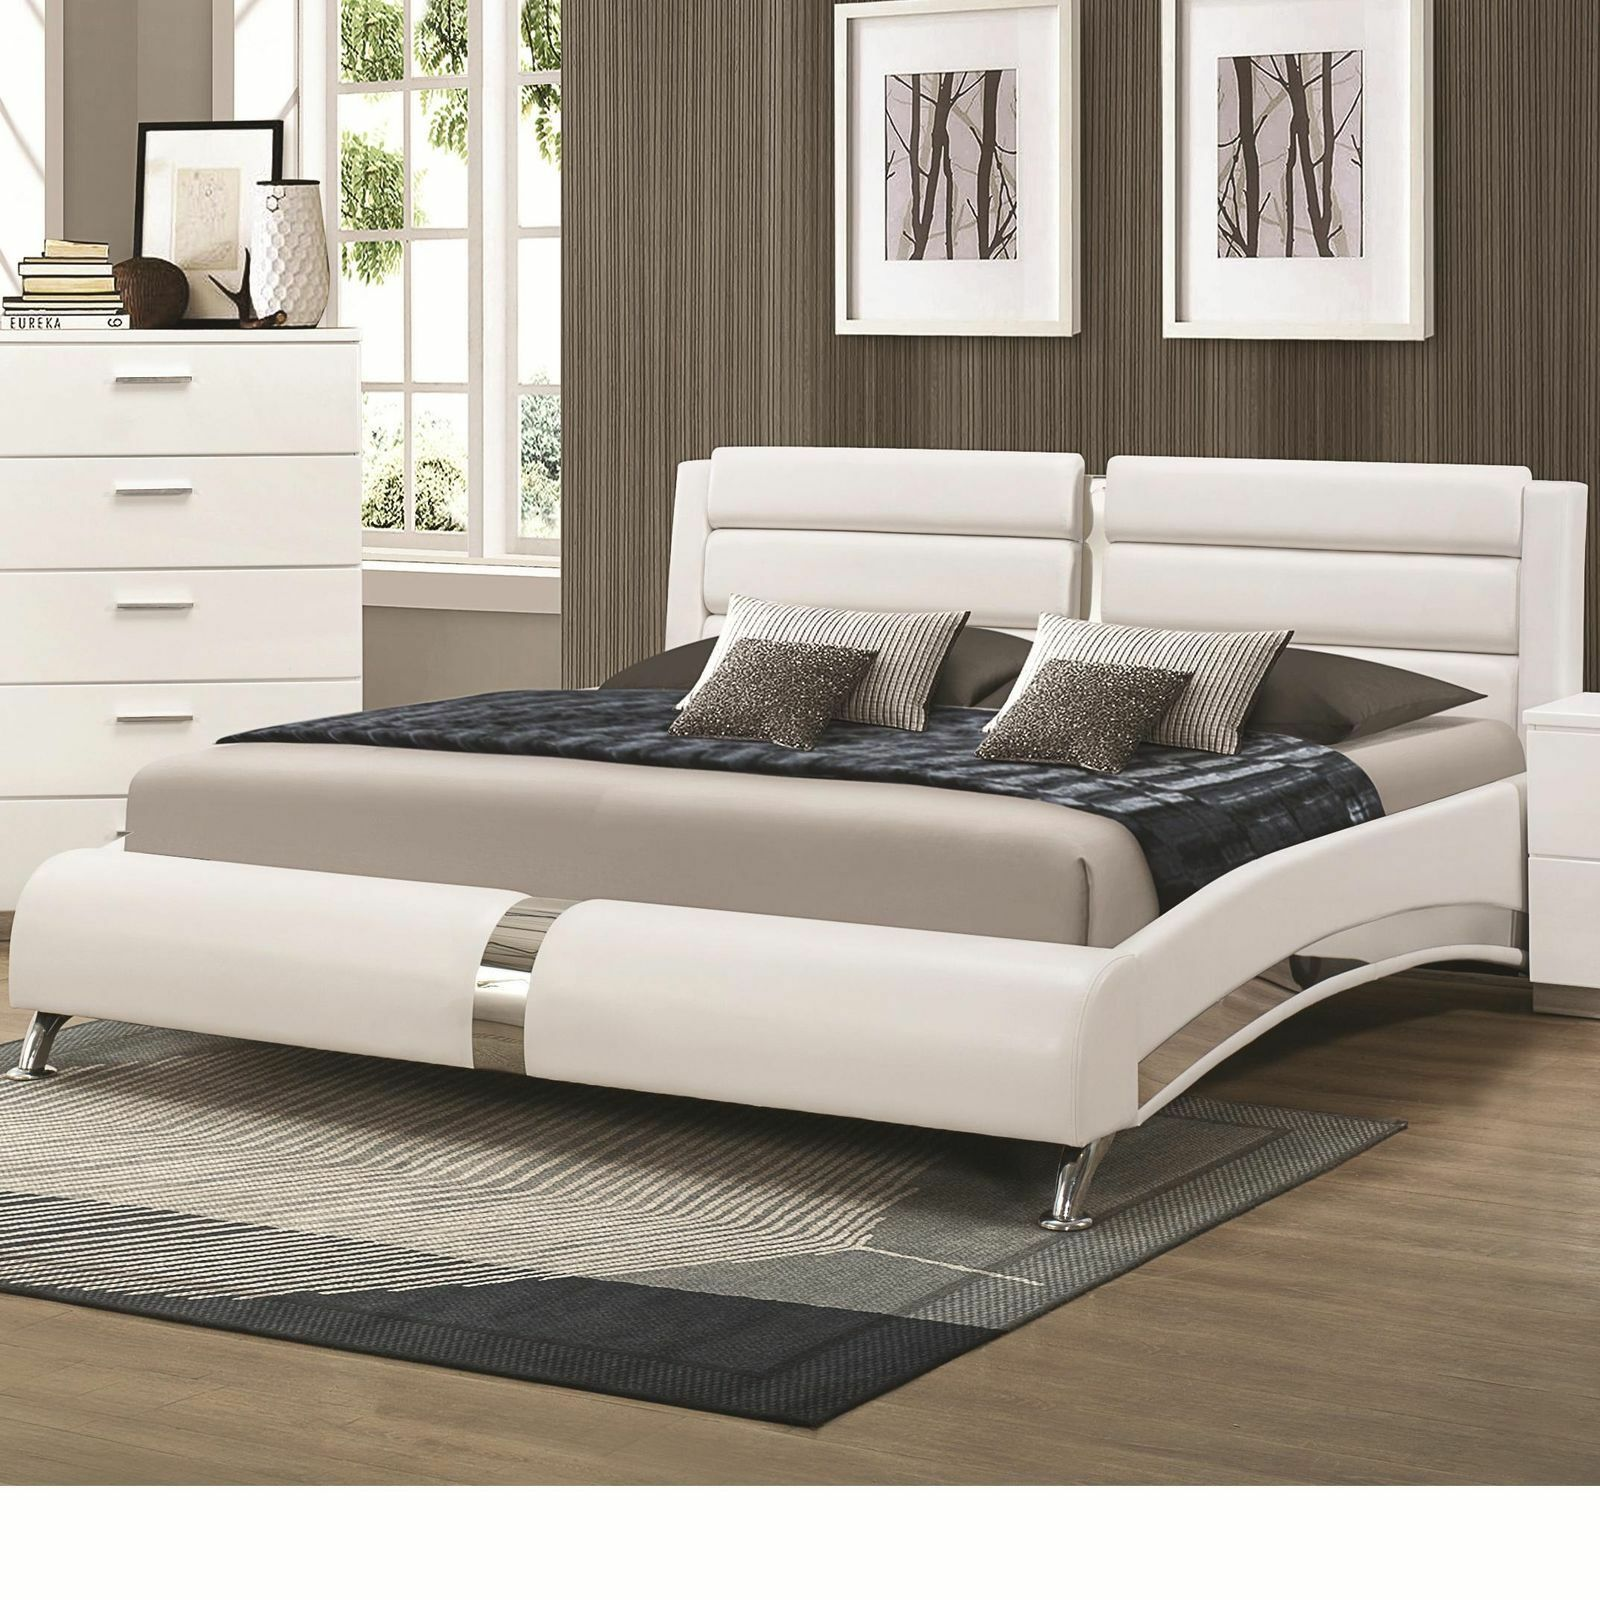 Coaster KW Felicity Glossy White California King Bed